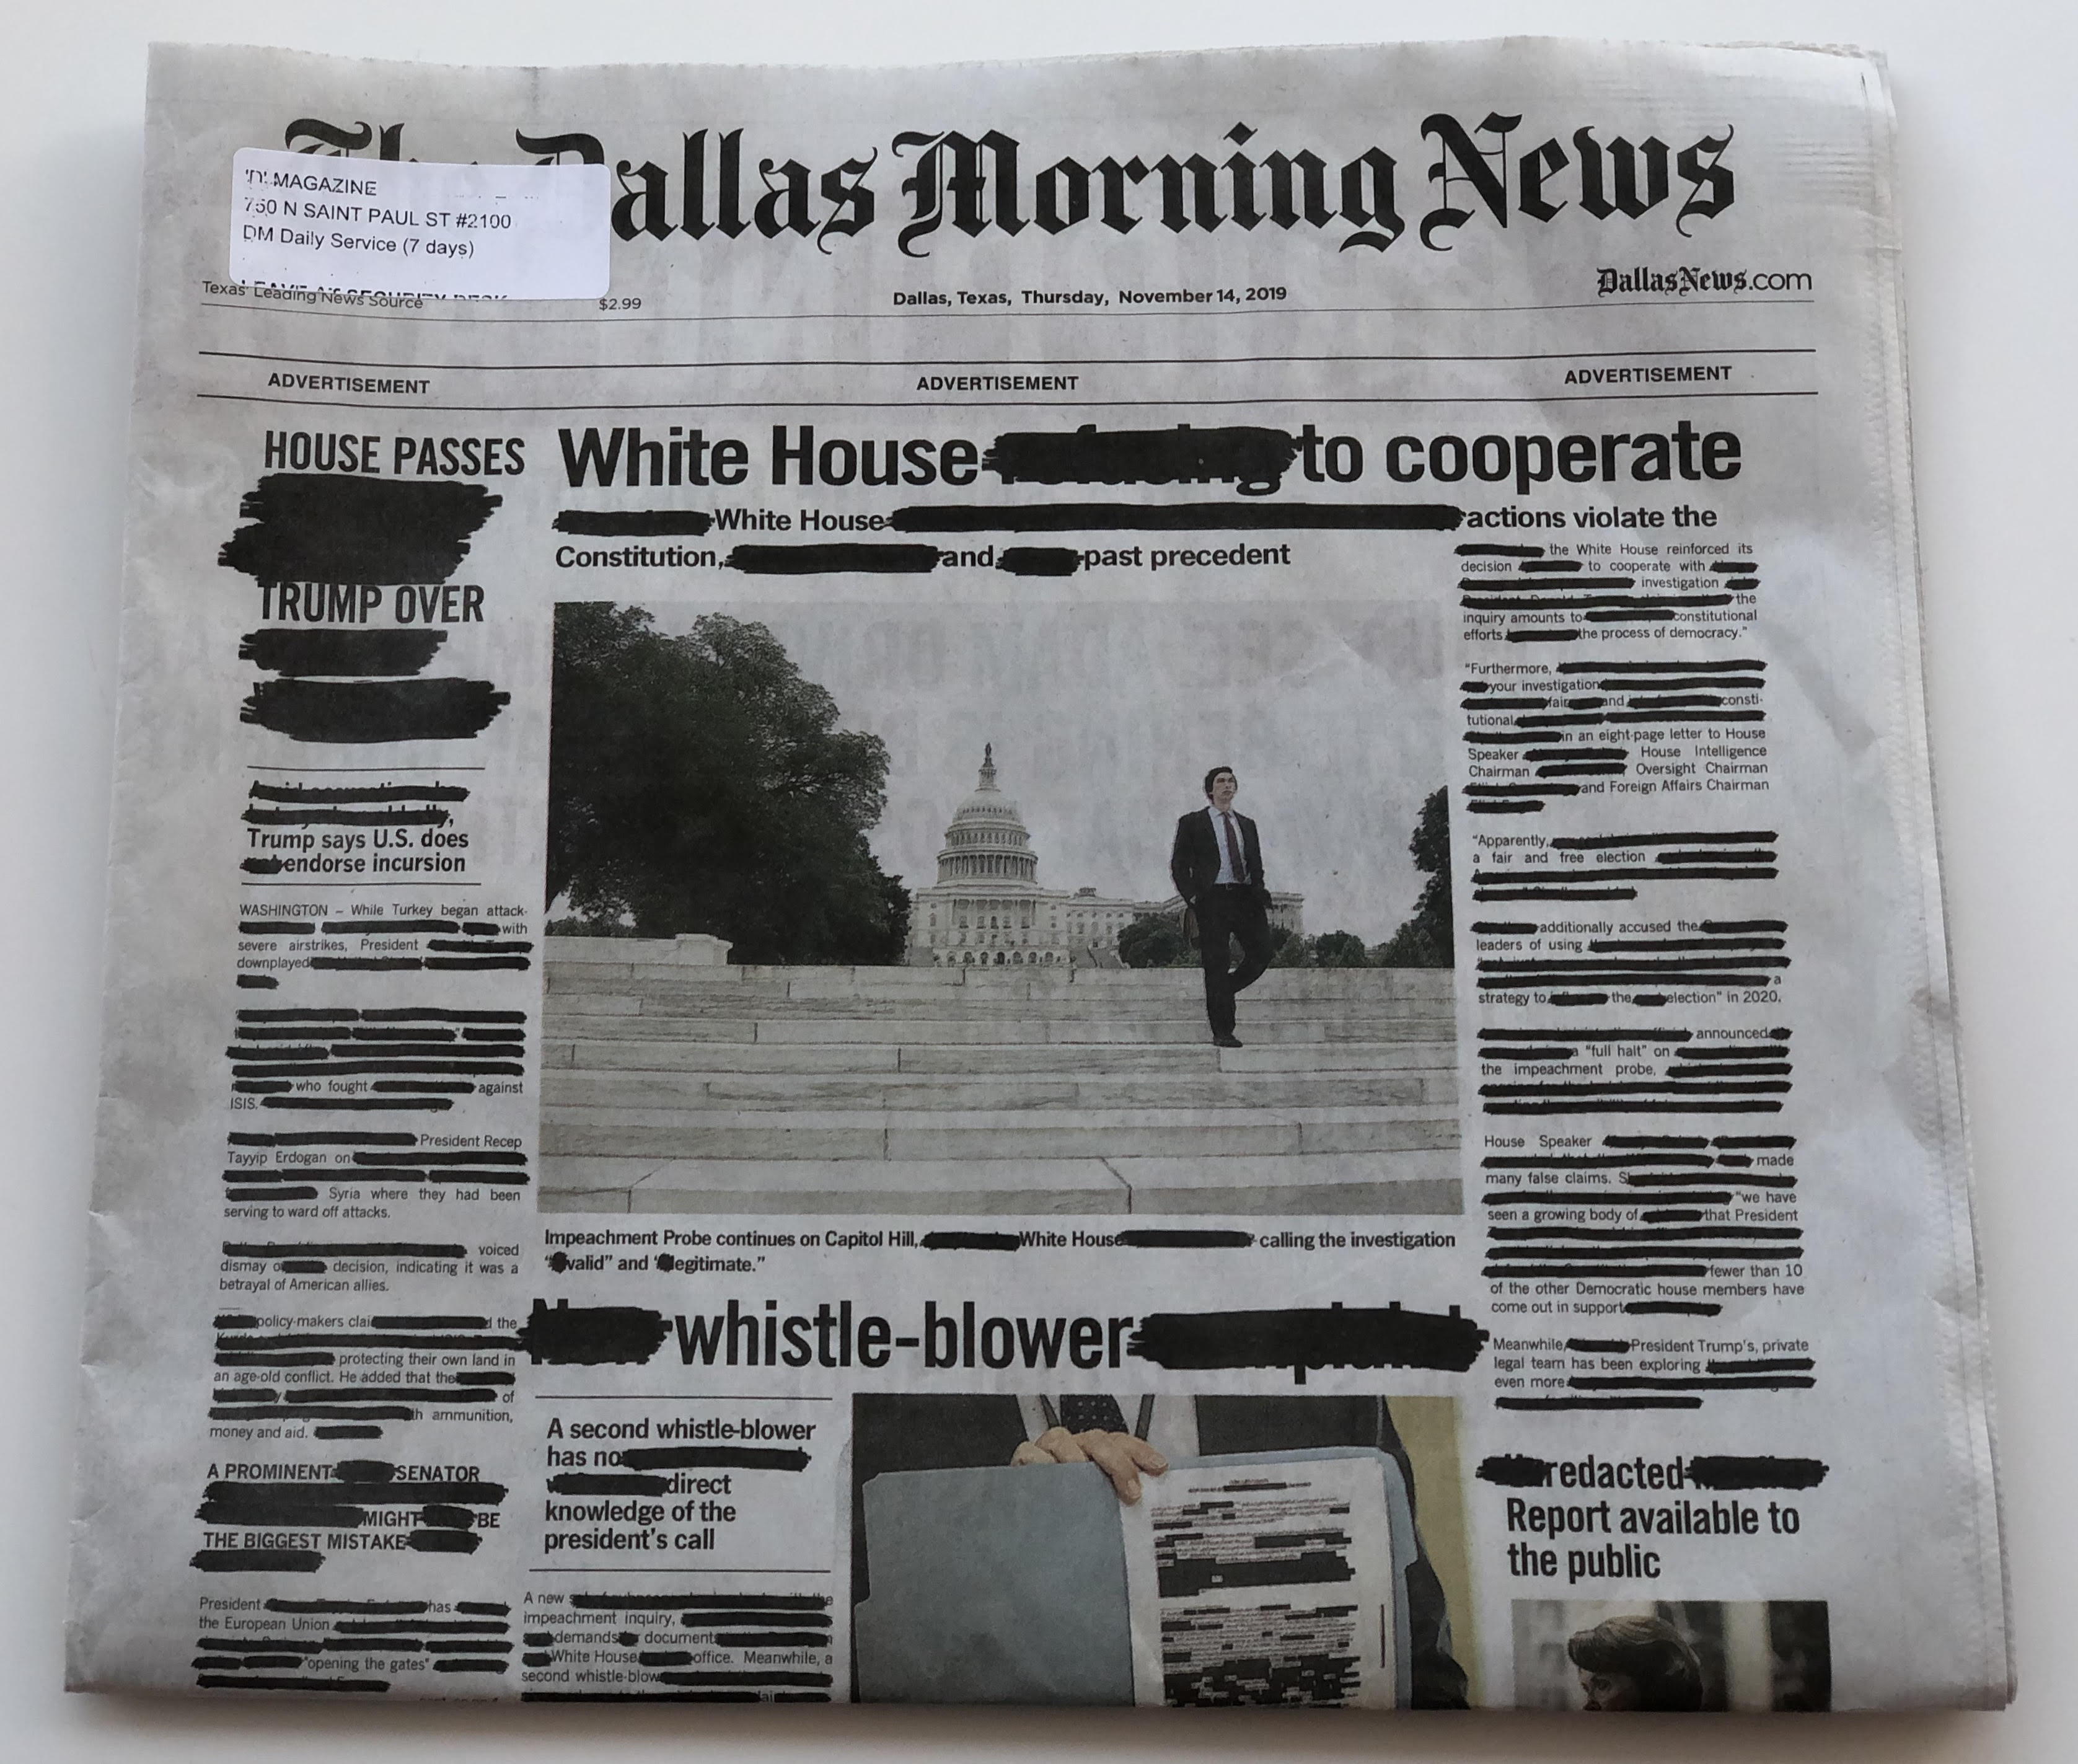 New Old Stock The Dallas Morning News Counter Mat Advertising Comics Awesome!